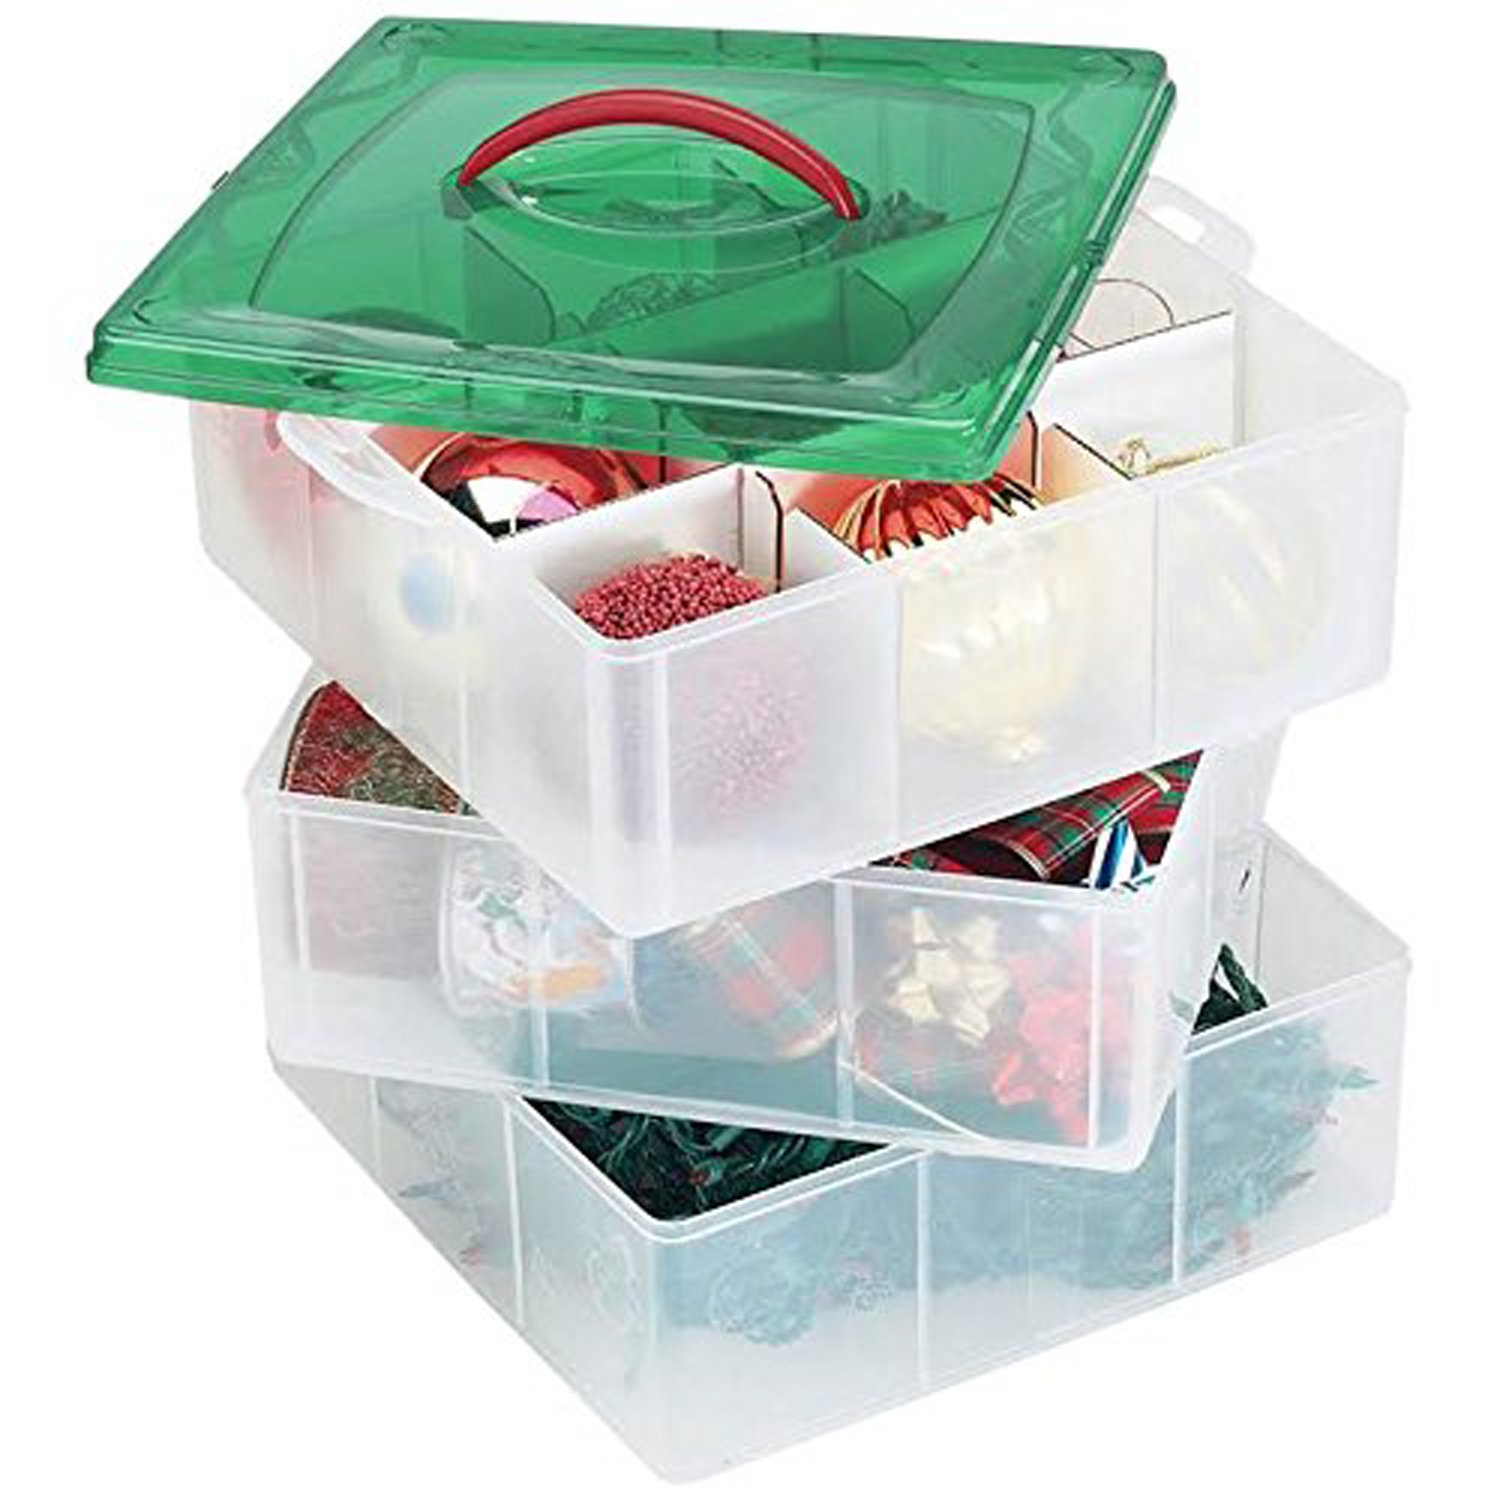 amazoncom christmas plastic ornament storage container 3 stackable snap together box trays bundled with ribbon container cloth home kitchen - Christmas Decoration Storage Box